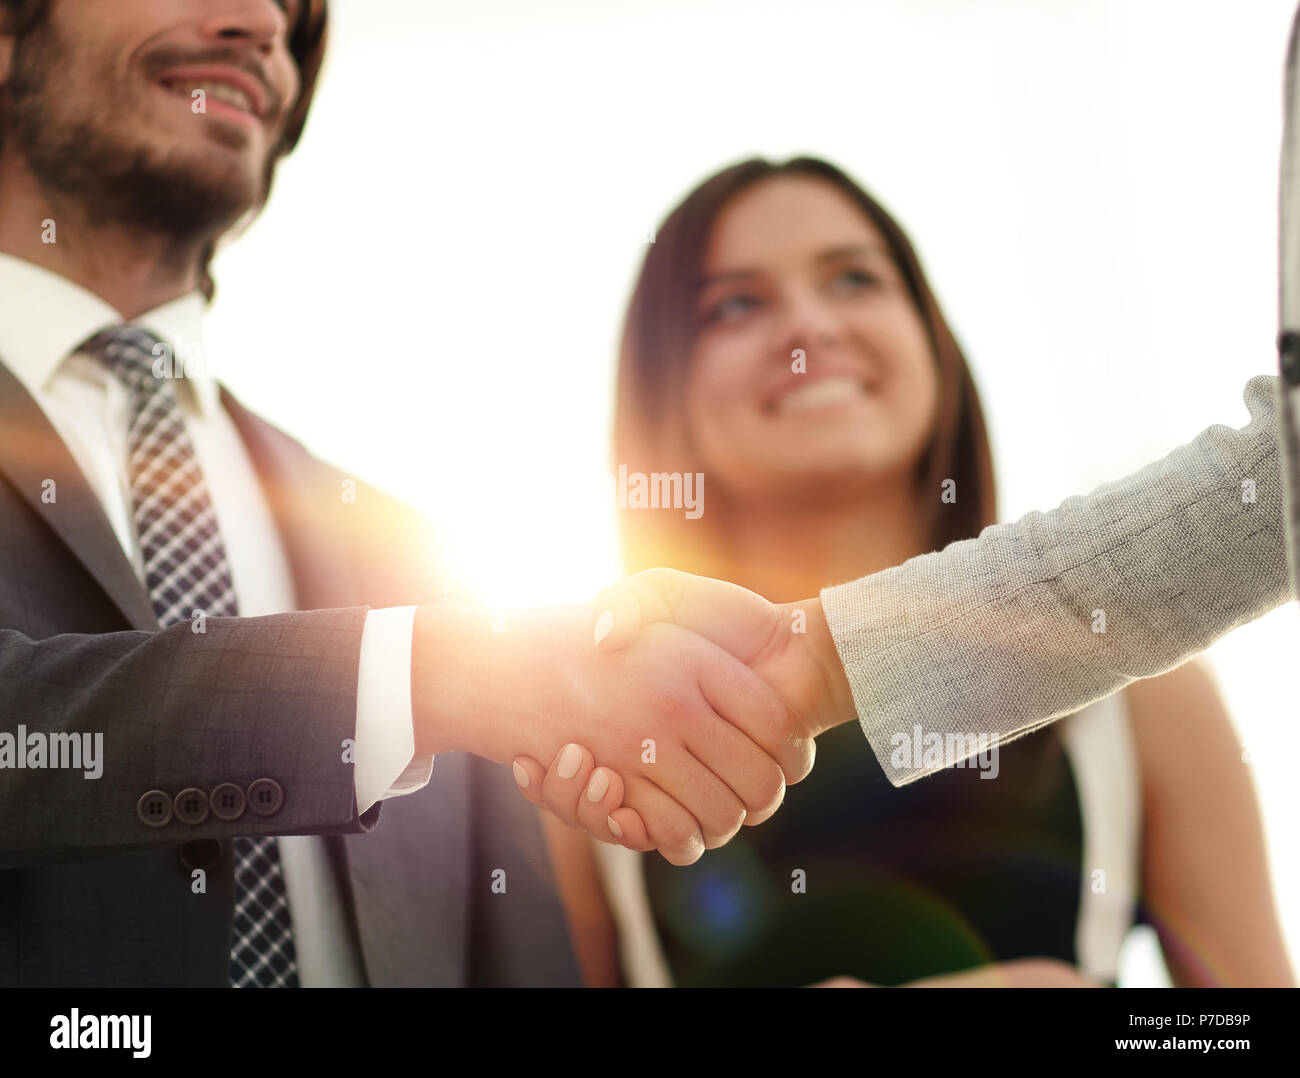 Businesspeople  shaking hands against room with large window loo - Stock Image